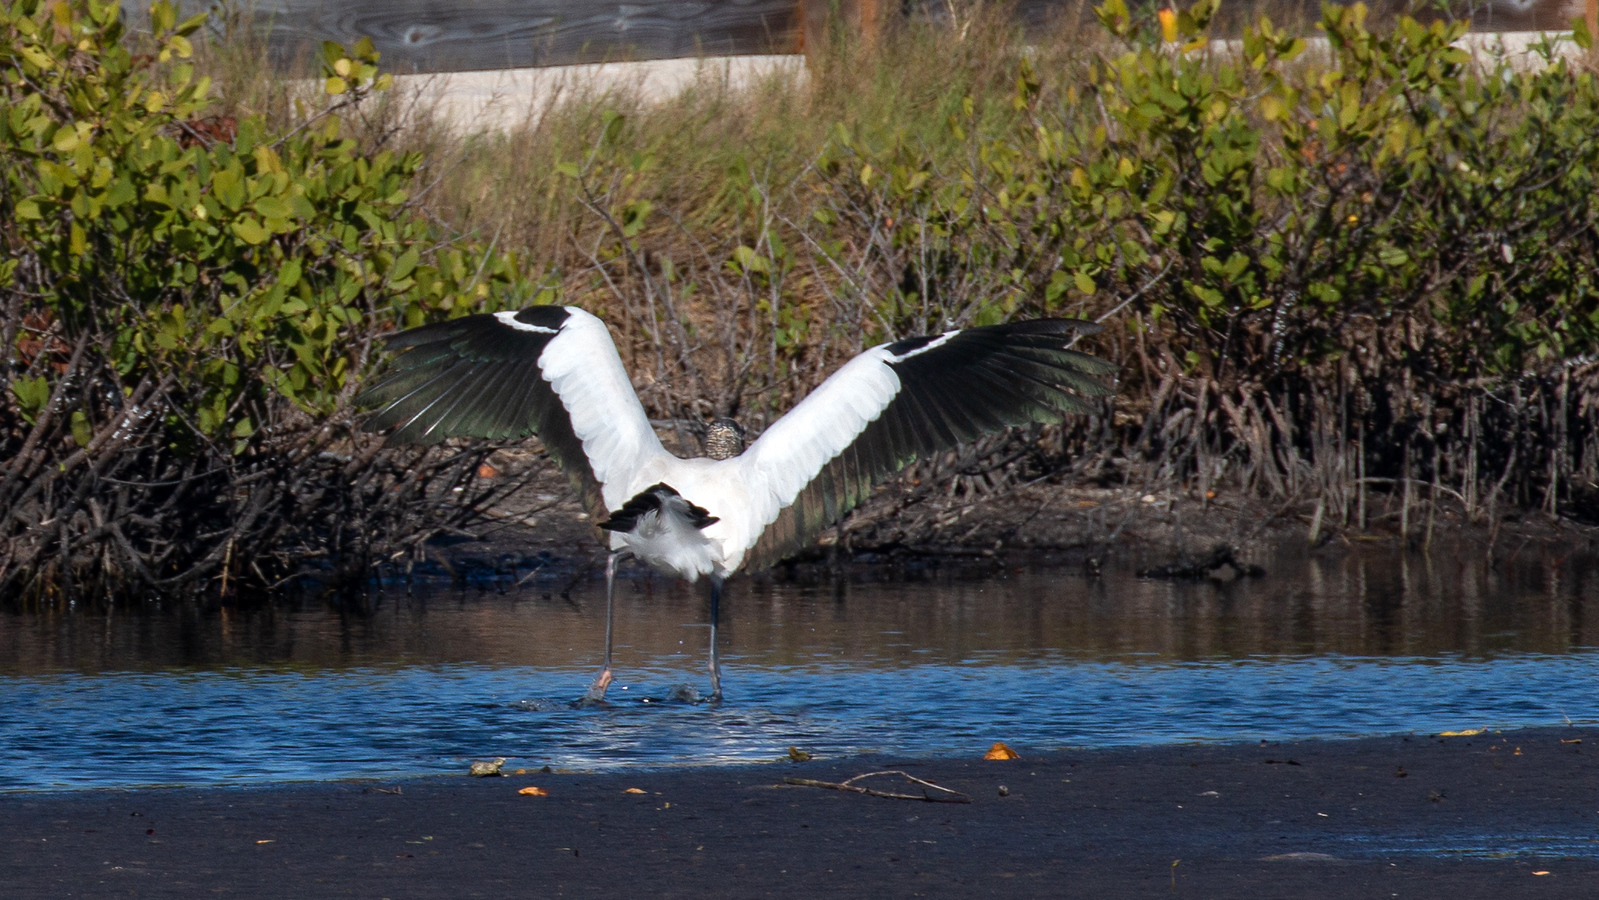 Photograph of Wood Stork